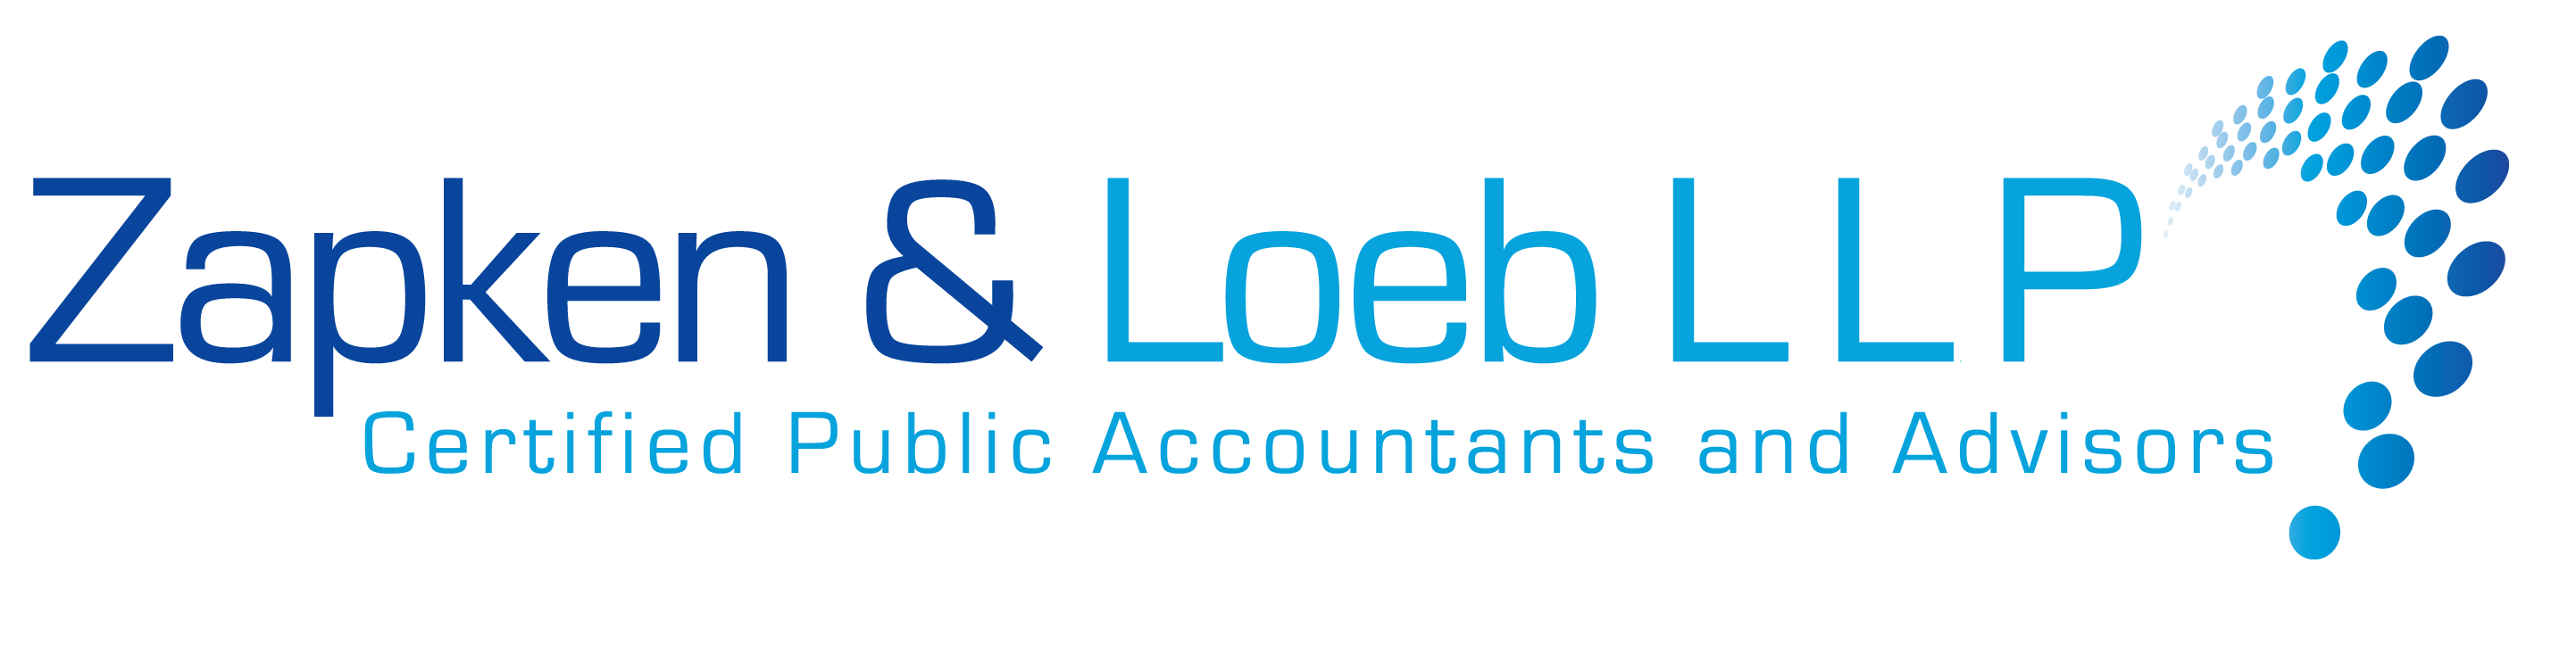 Woodbury, NY Accounting Firm | COVID-19 Resources for Taxpayers Page | Zapken & Loeb L.L.P.